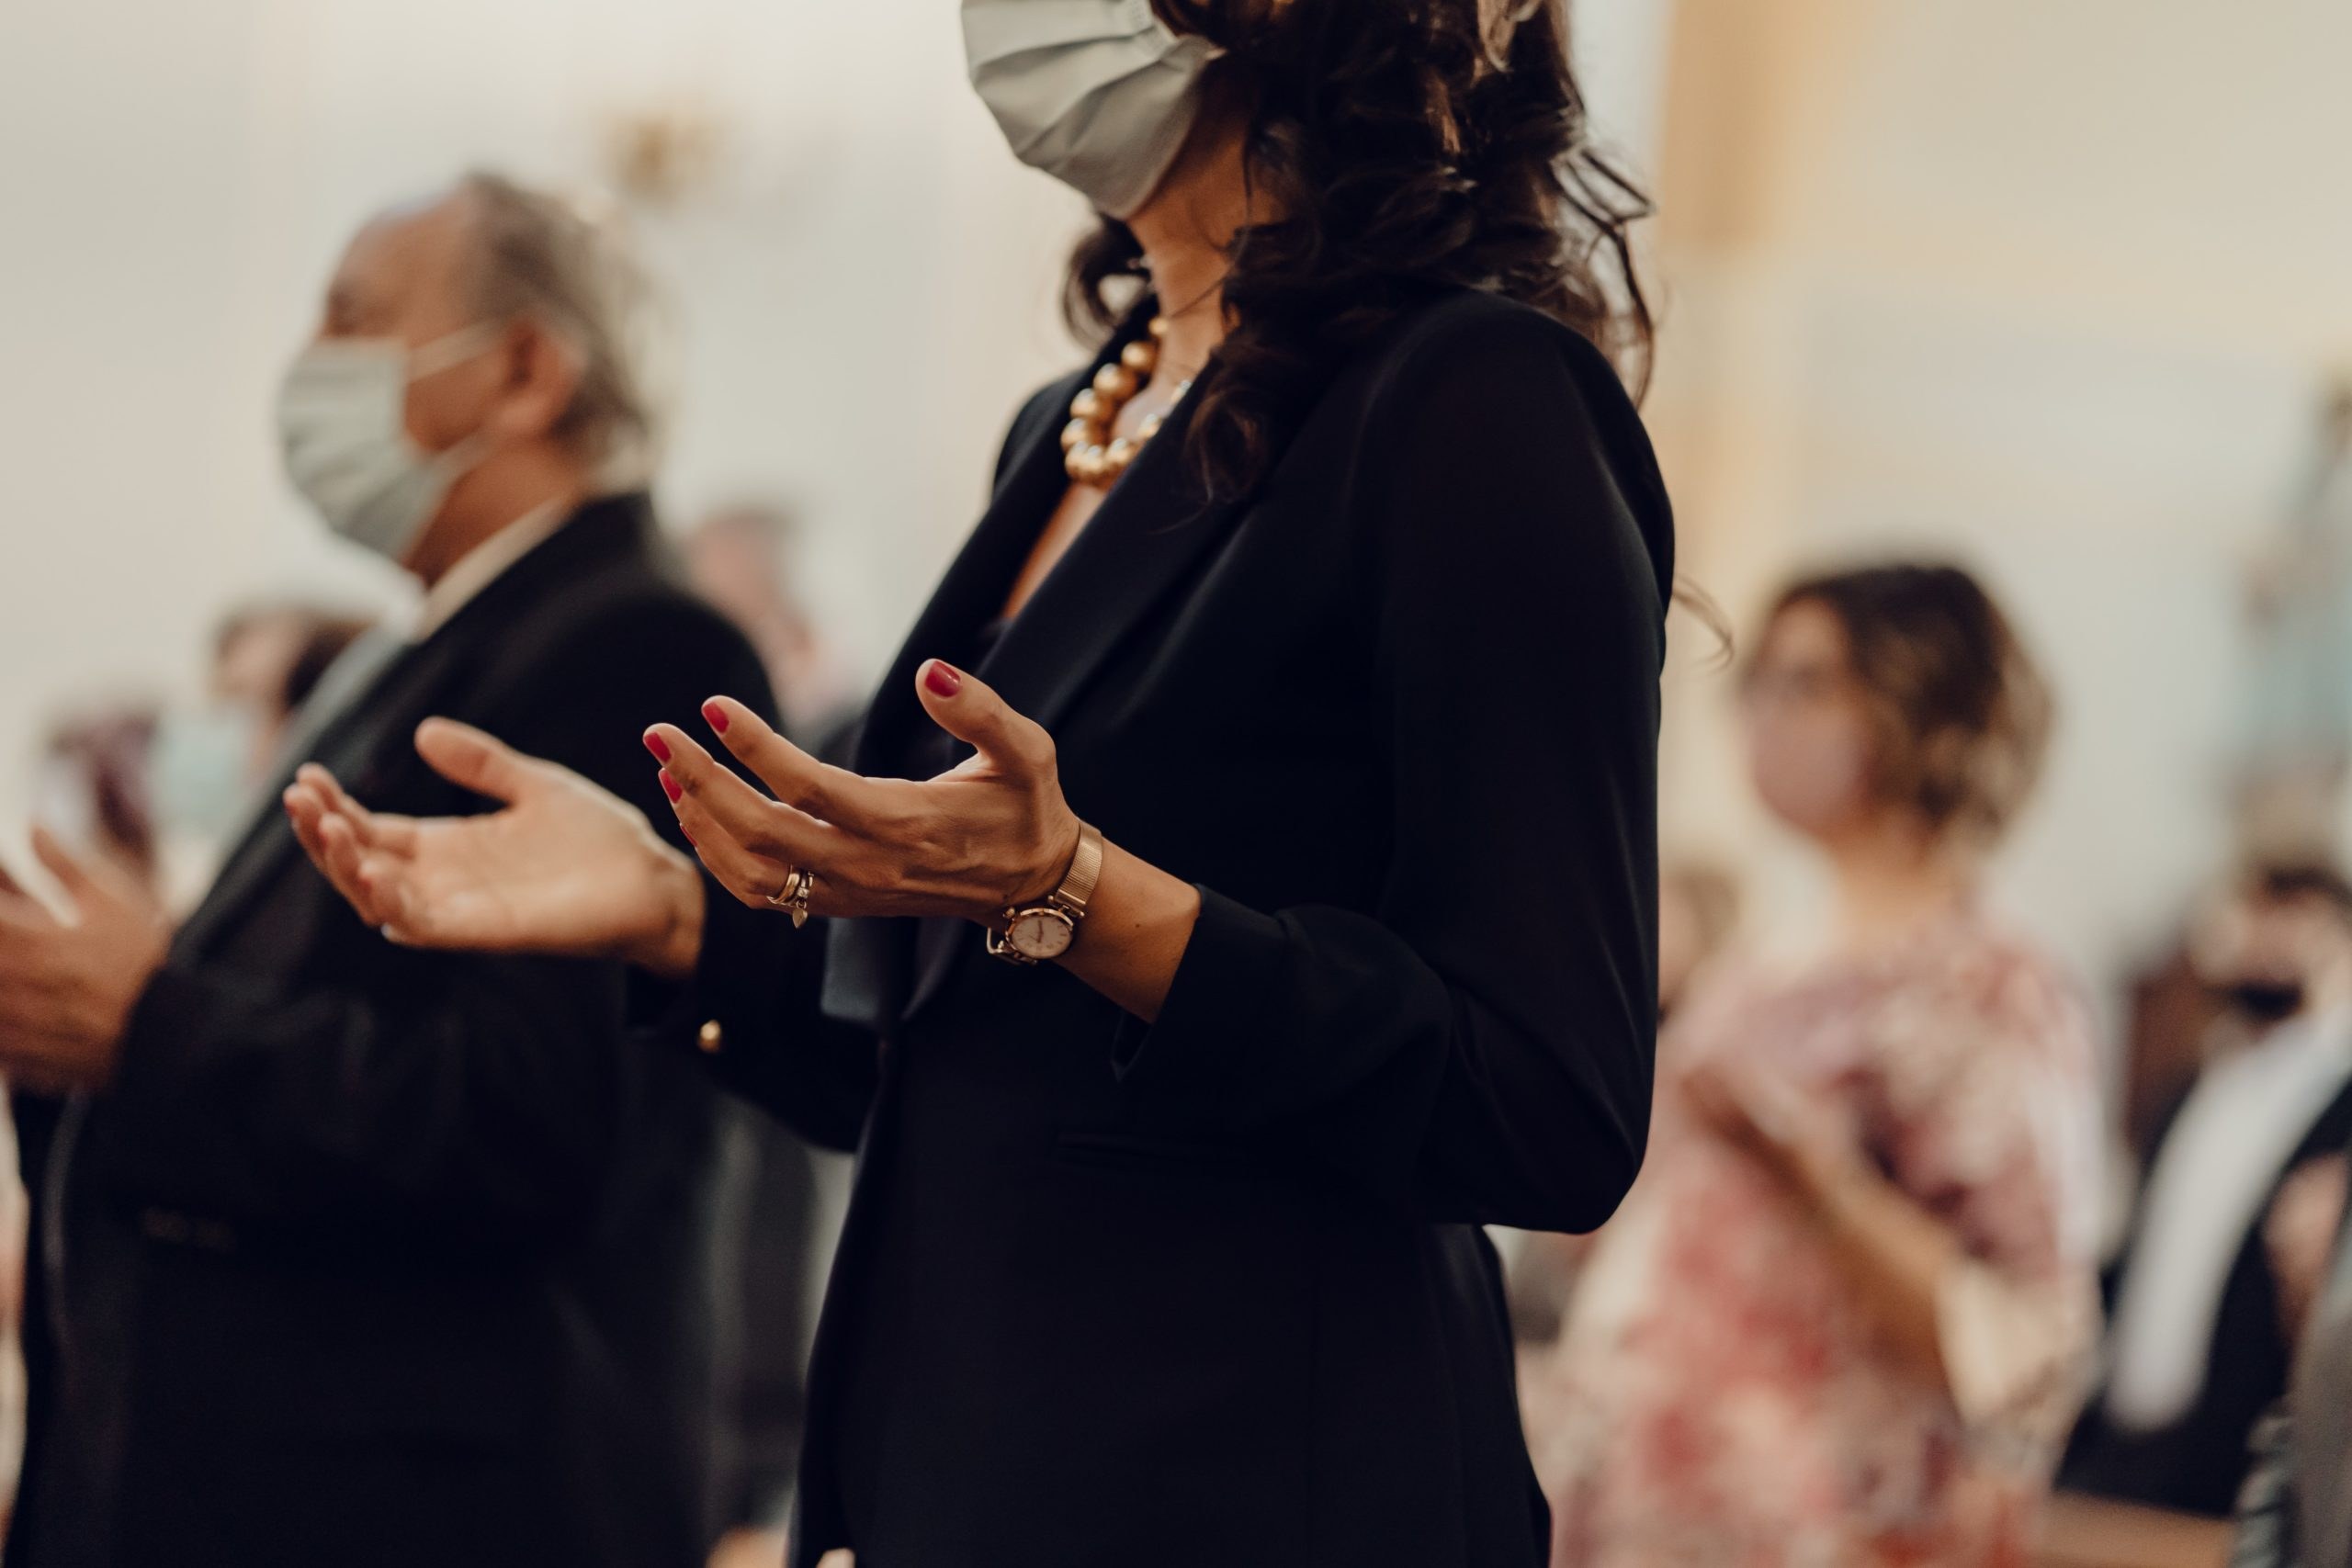 Woman lifting hands in church with mask on.